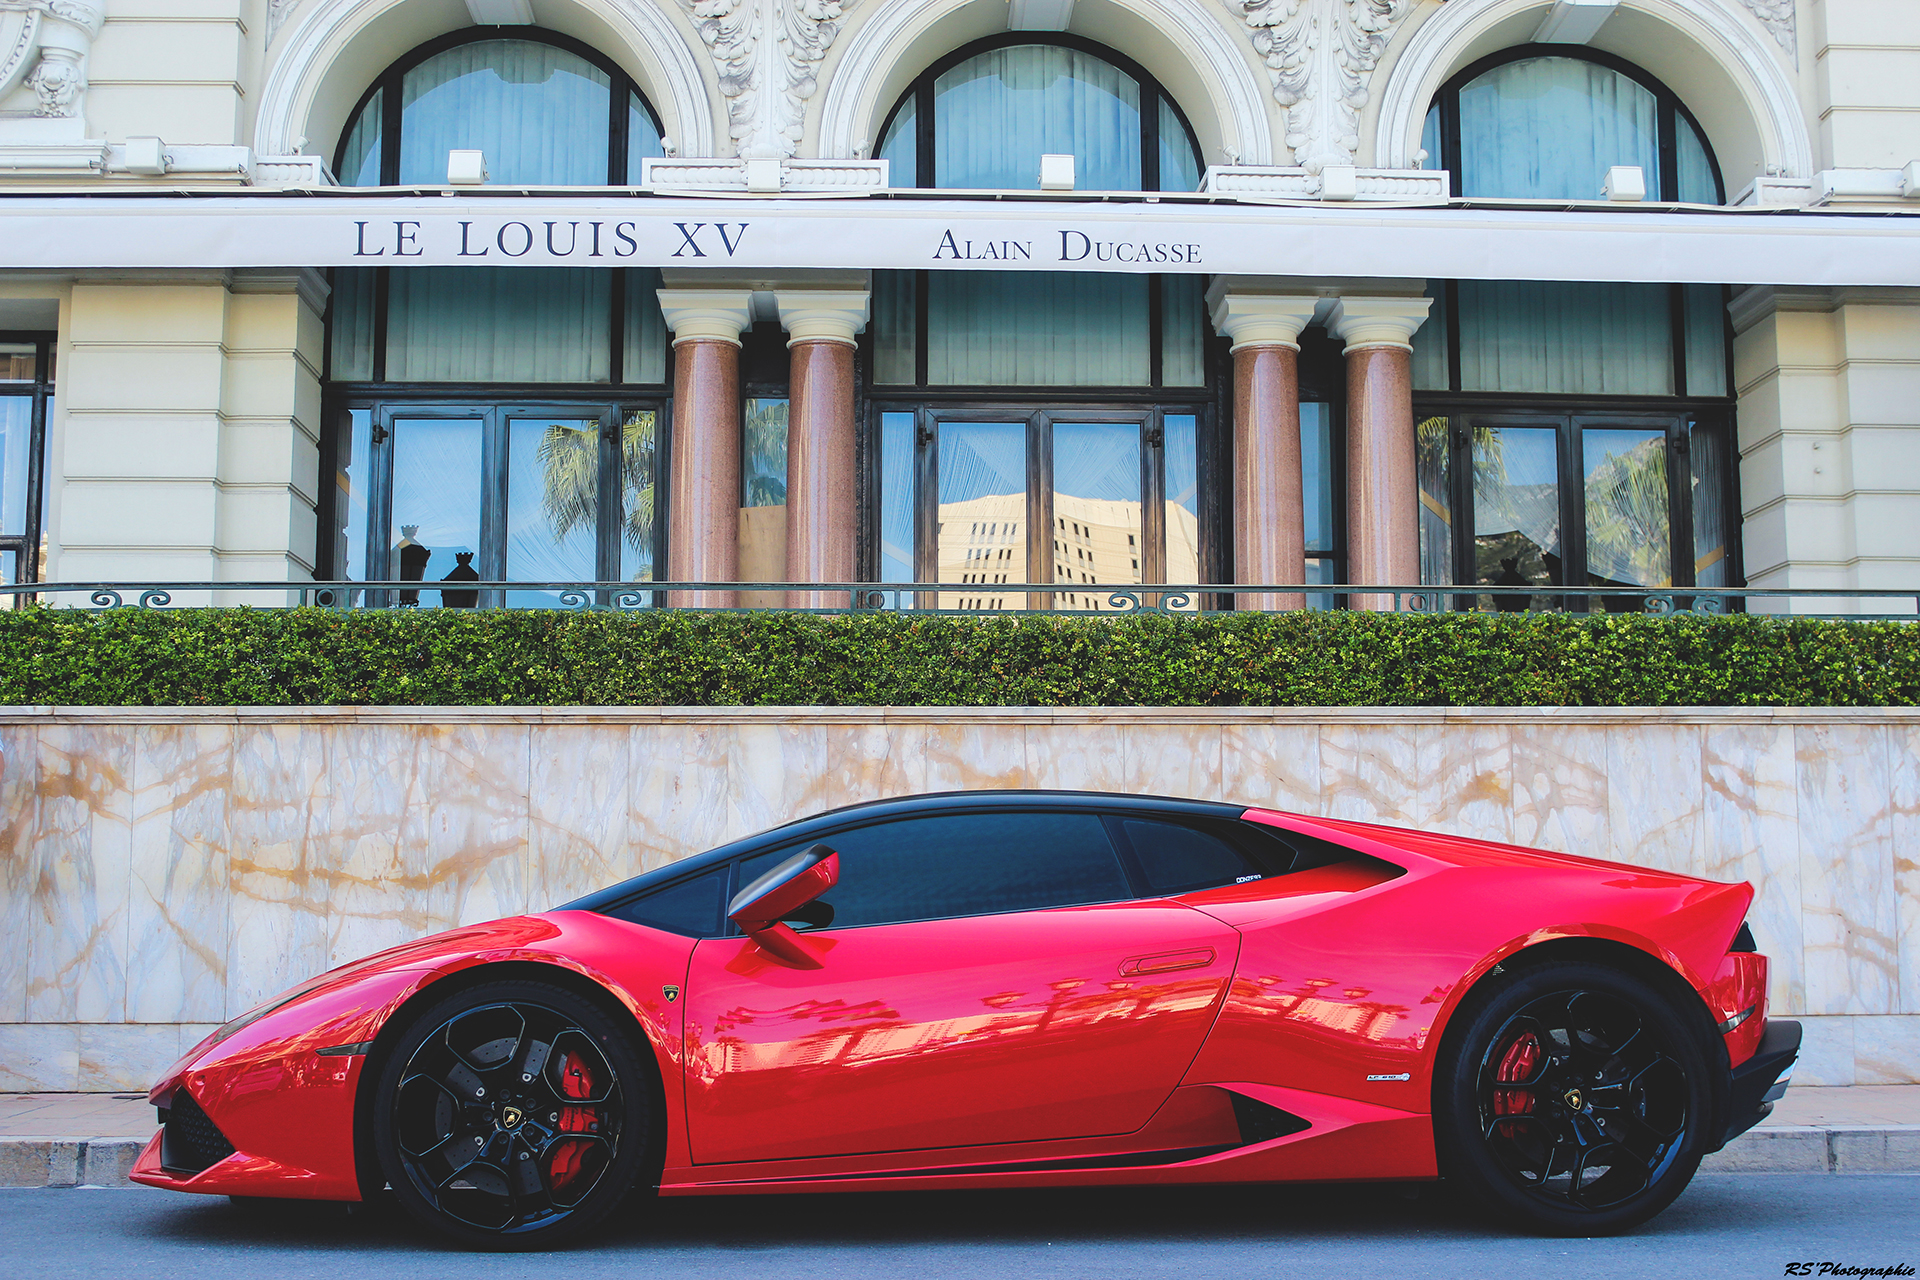 Huracan red side-face - Top Marques Monaco 2016 - Arnaud Demasier RS Photographie